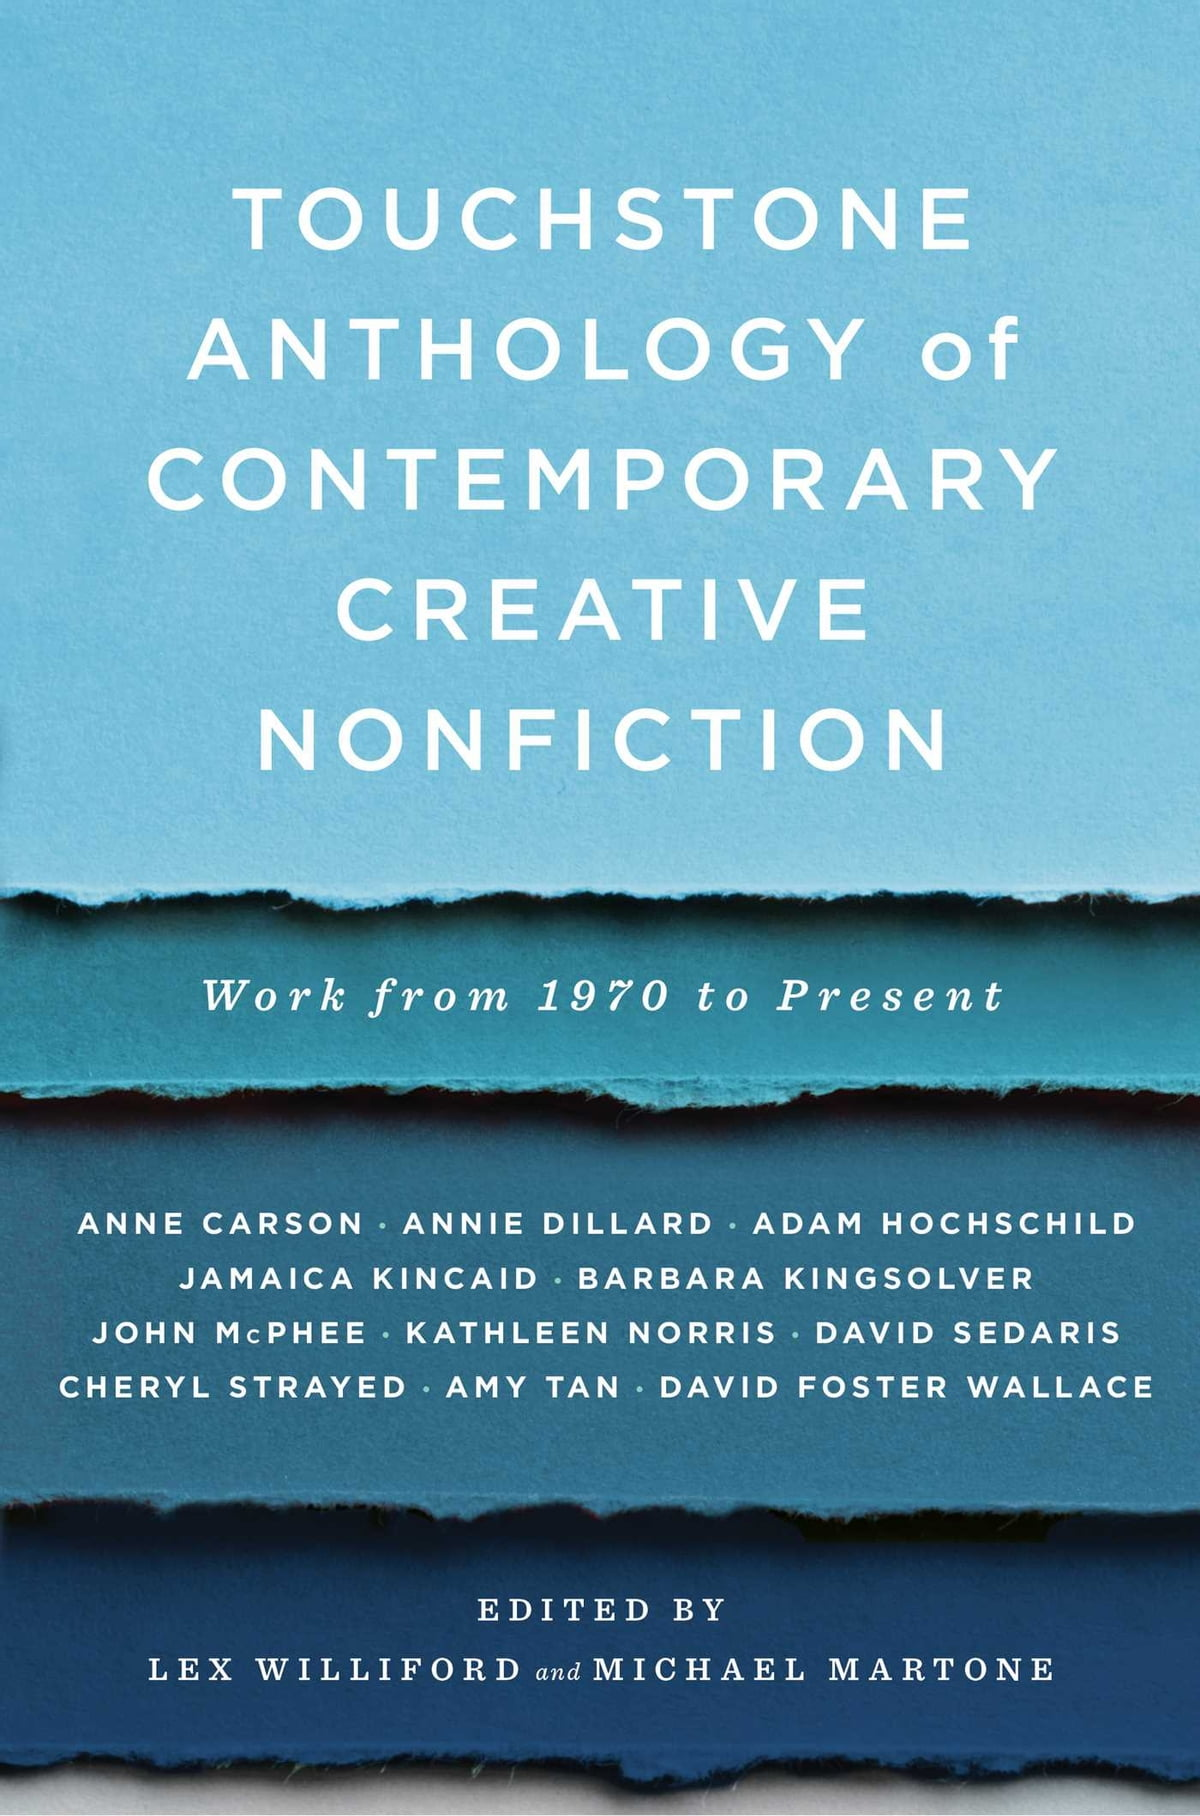 Touchstone anthology of contemporary creative nonfiction ebook by touchstone anthology of contemporary creative nonfiction ebook by 9781416545118 rakuten kobo fandeluxe Image collections